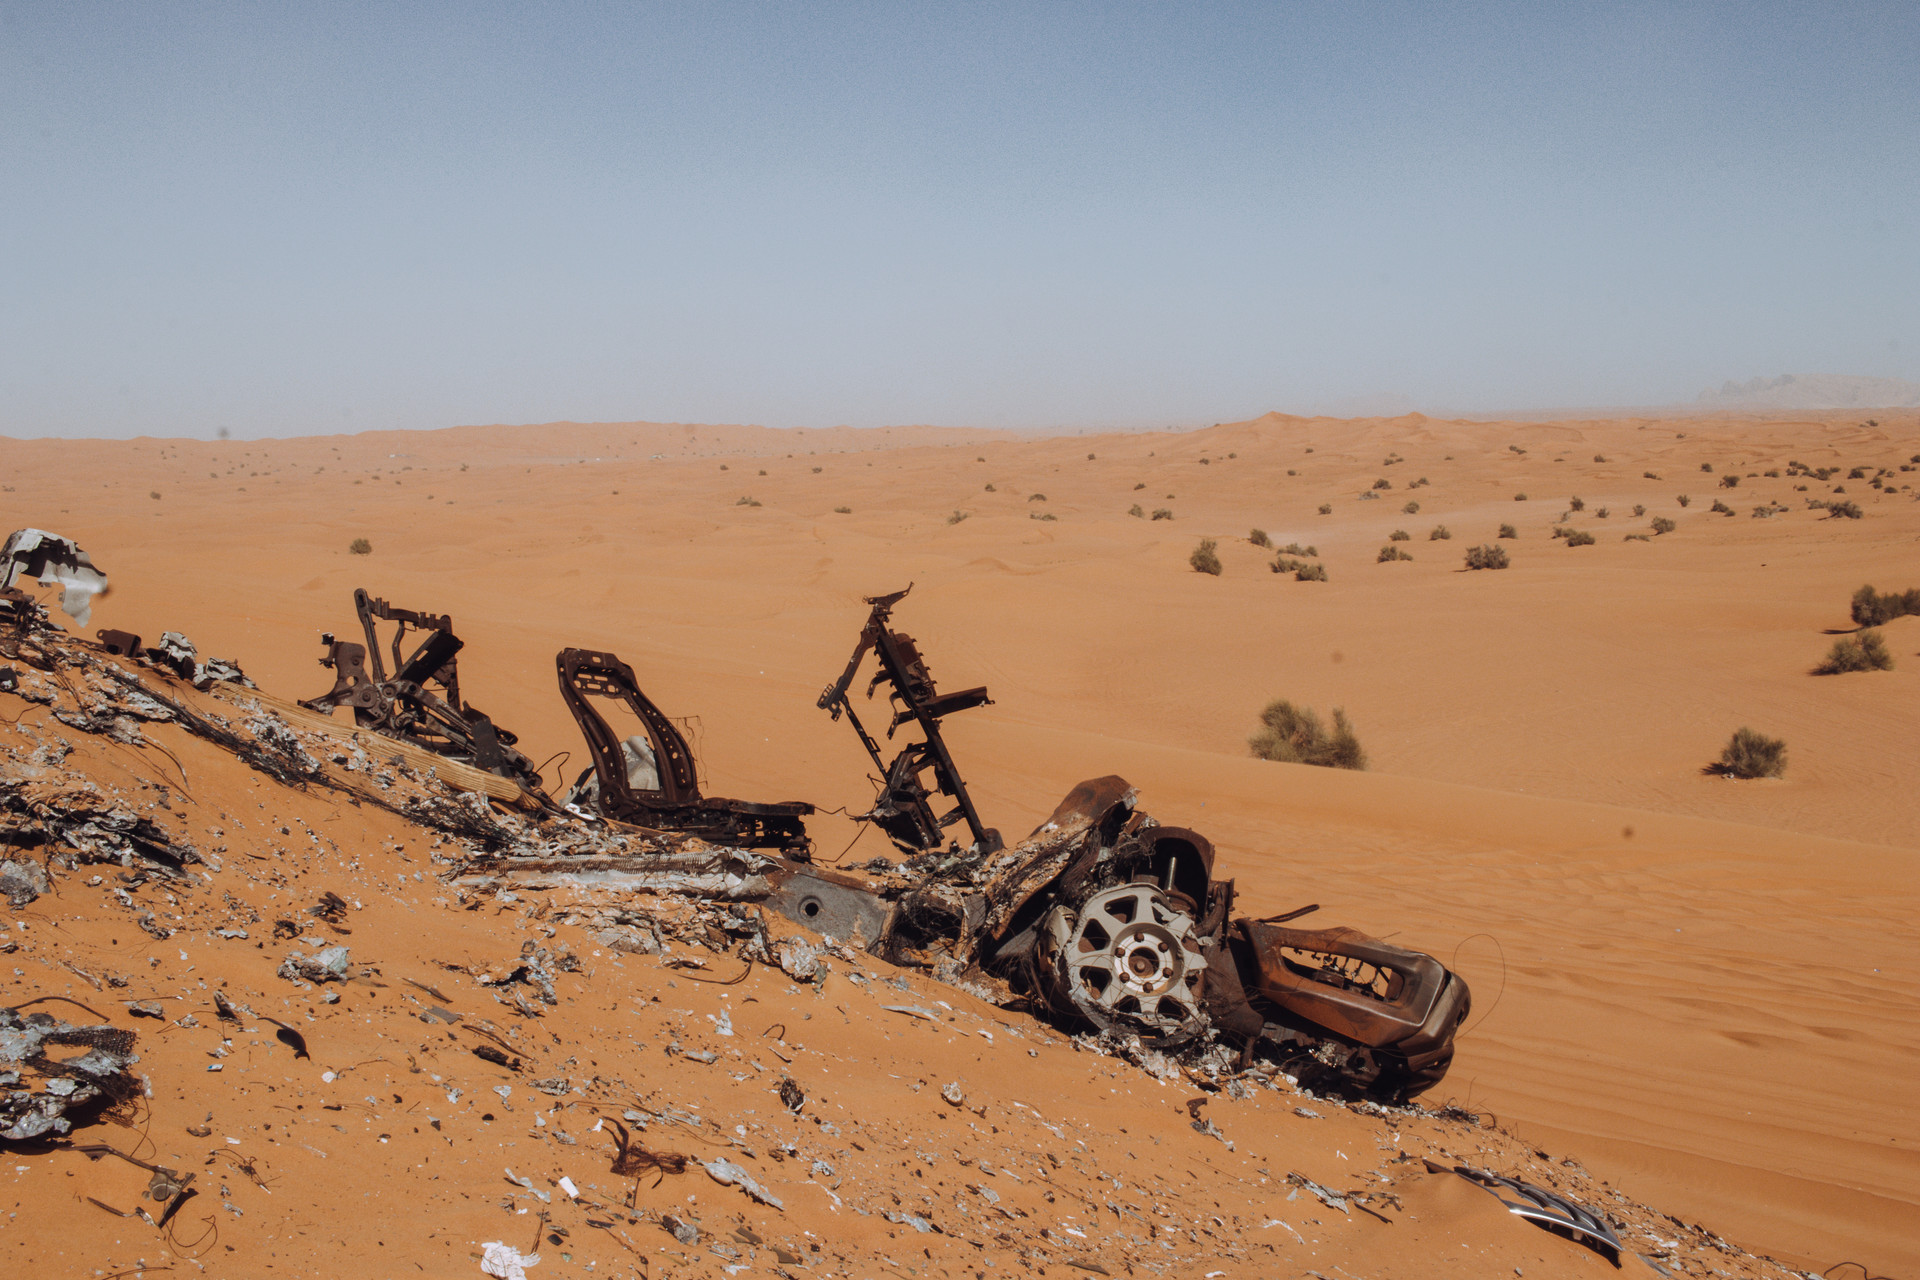 Burned Car, Al Fayya desert.